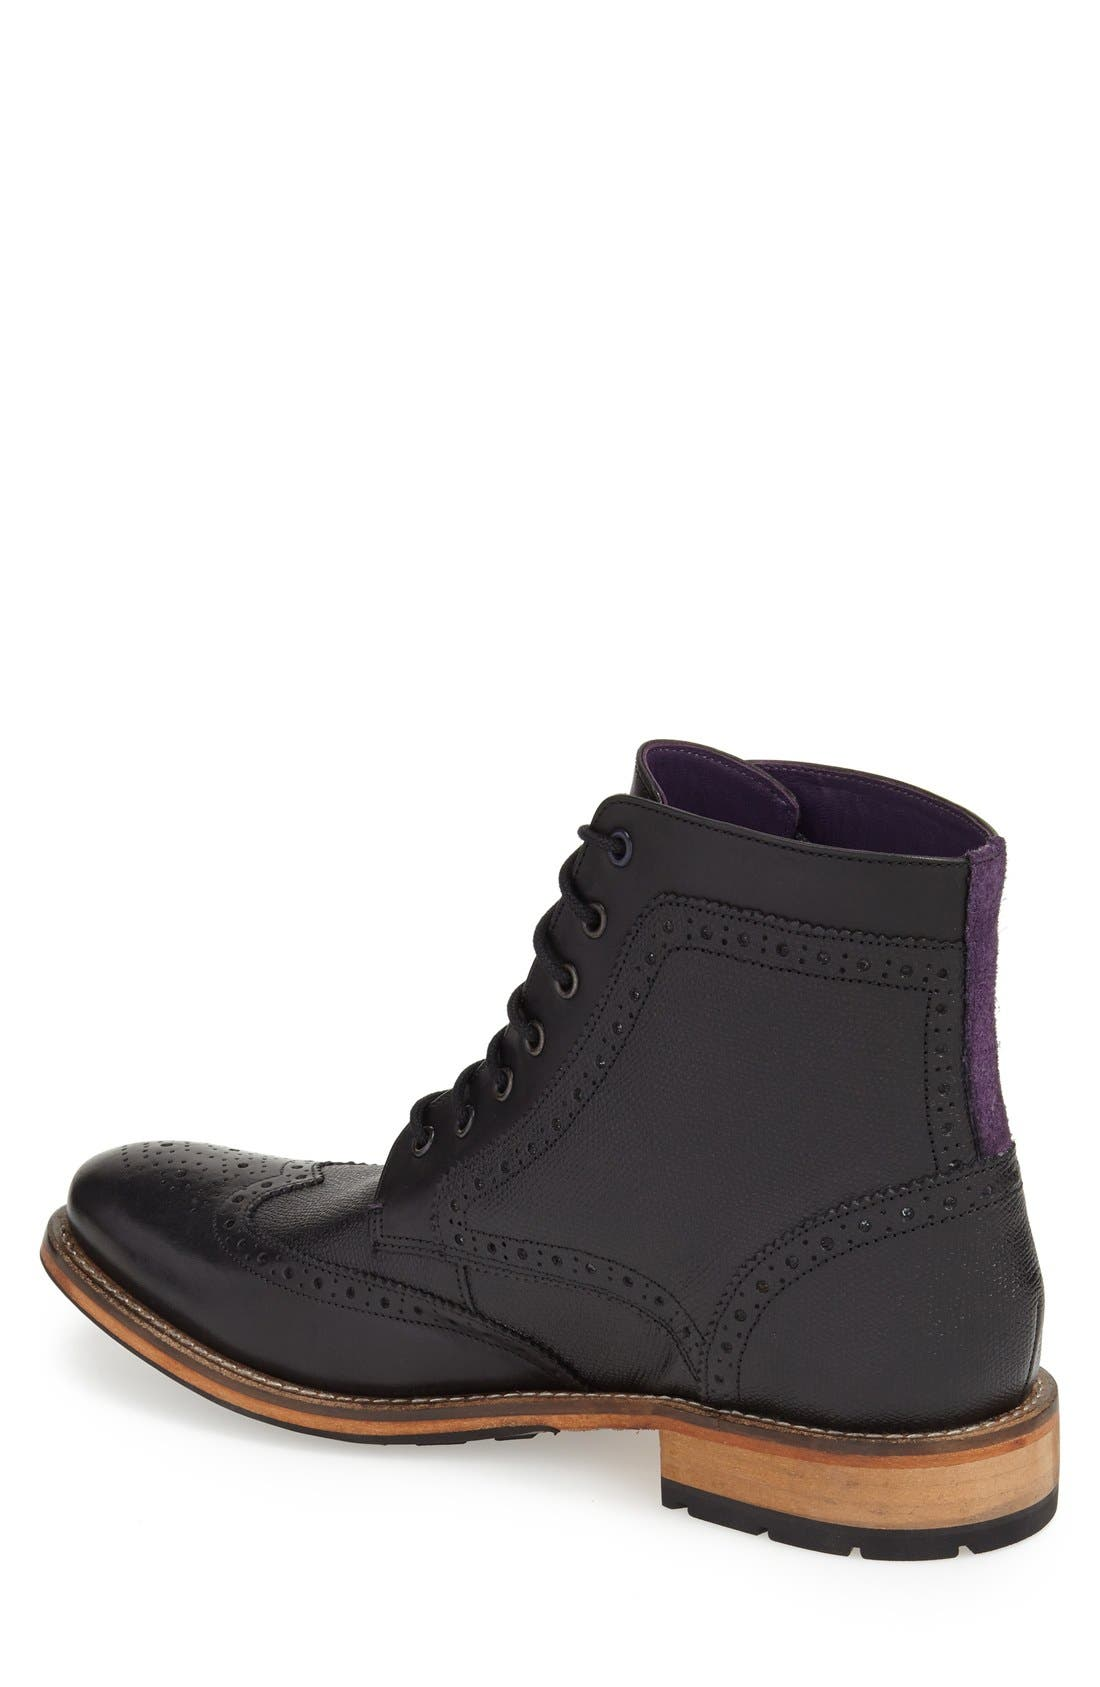 'Sealls 3' Wingtip Boot,                             Alternate thumbnail 2, color,                             001